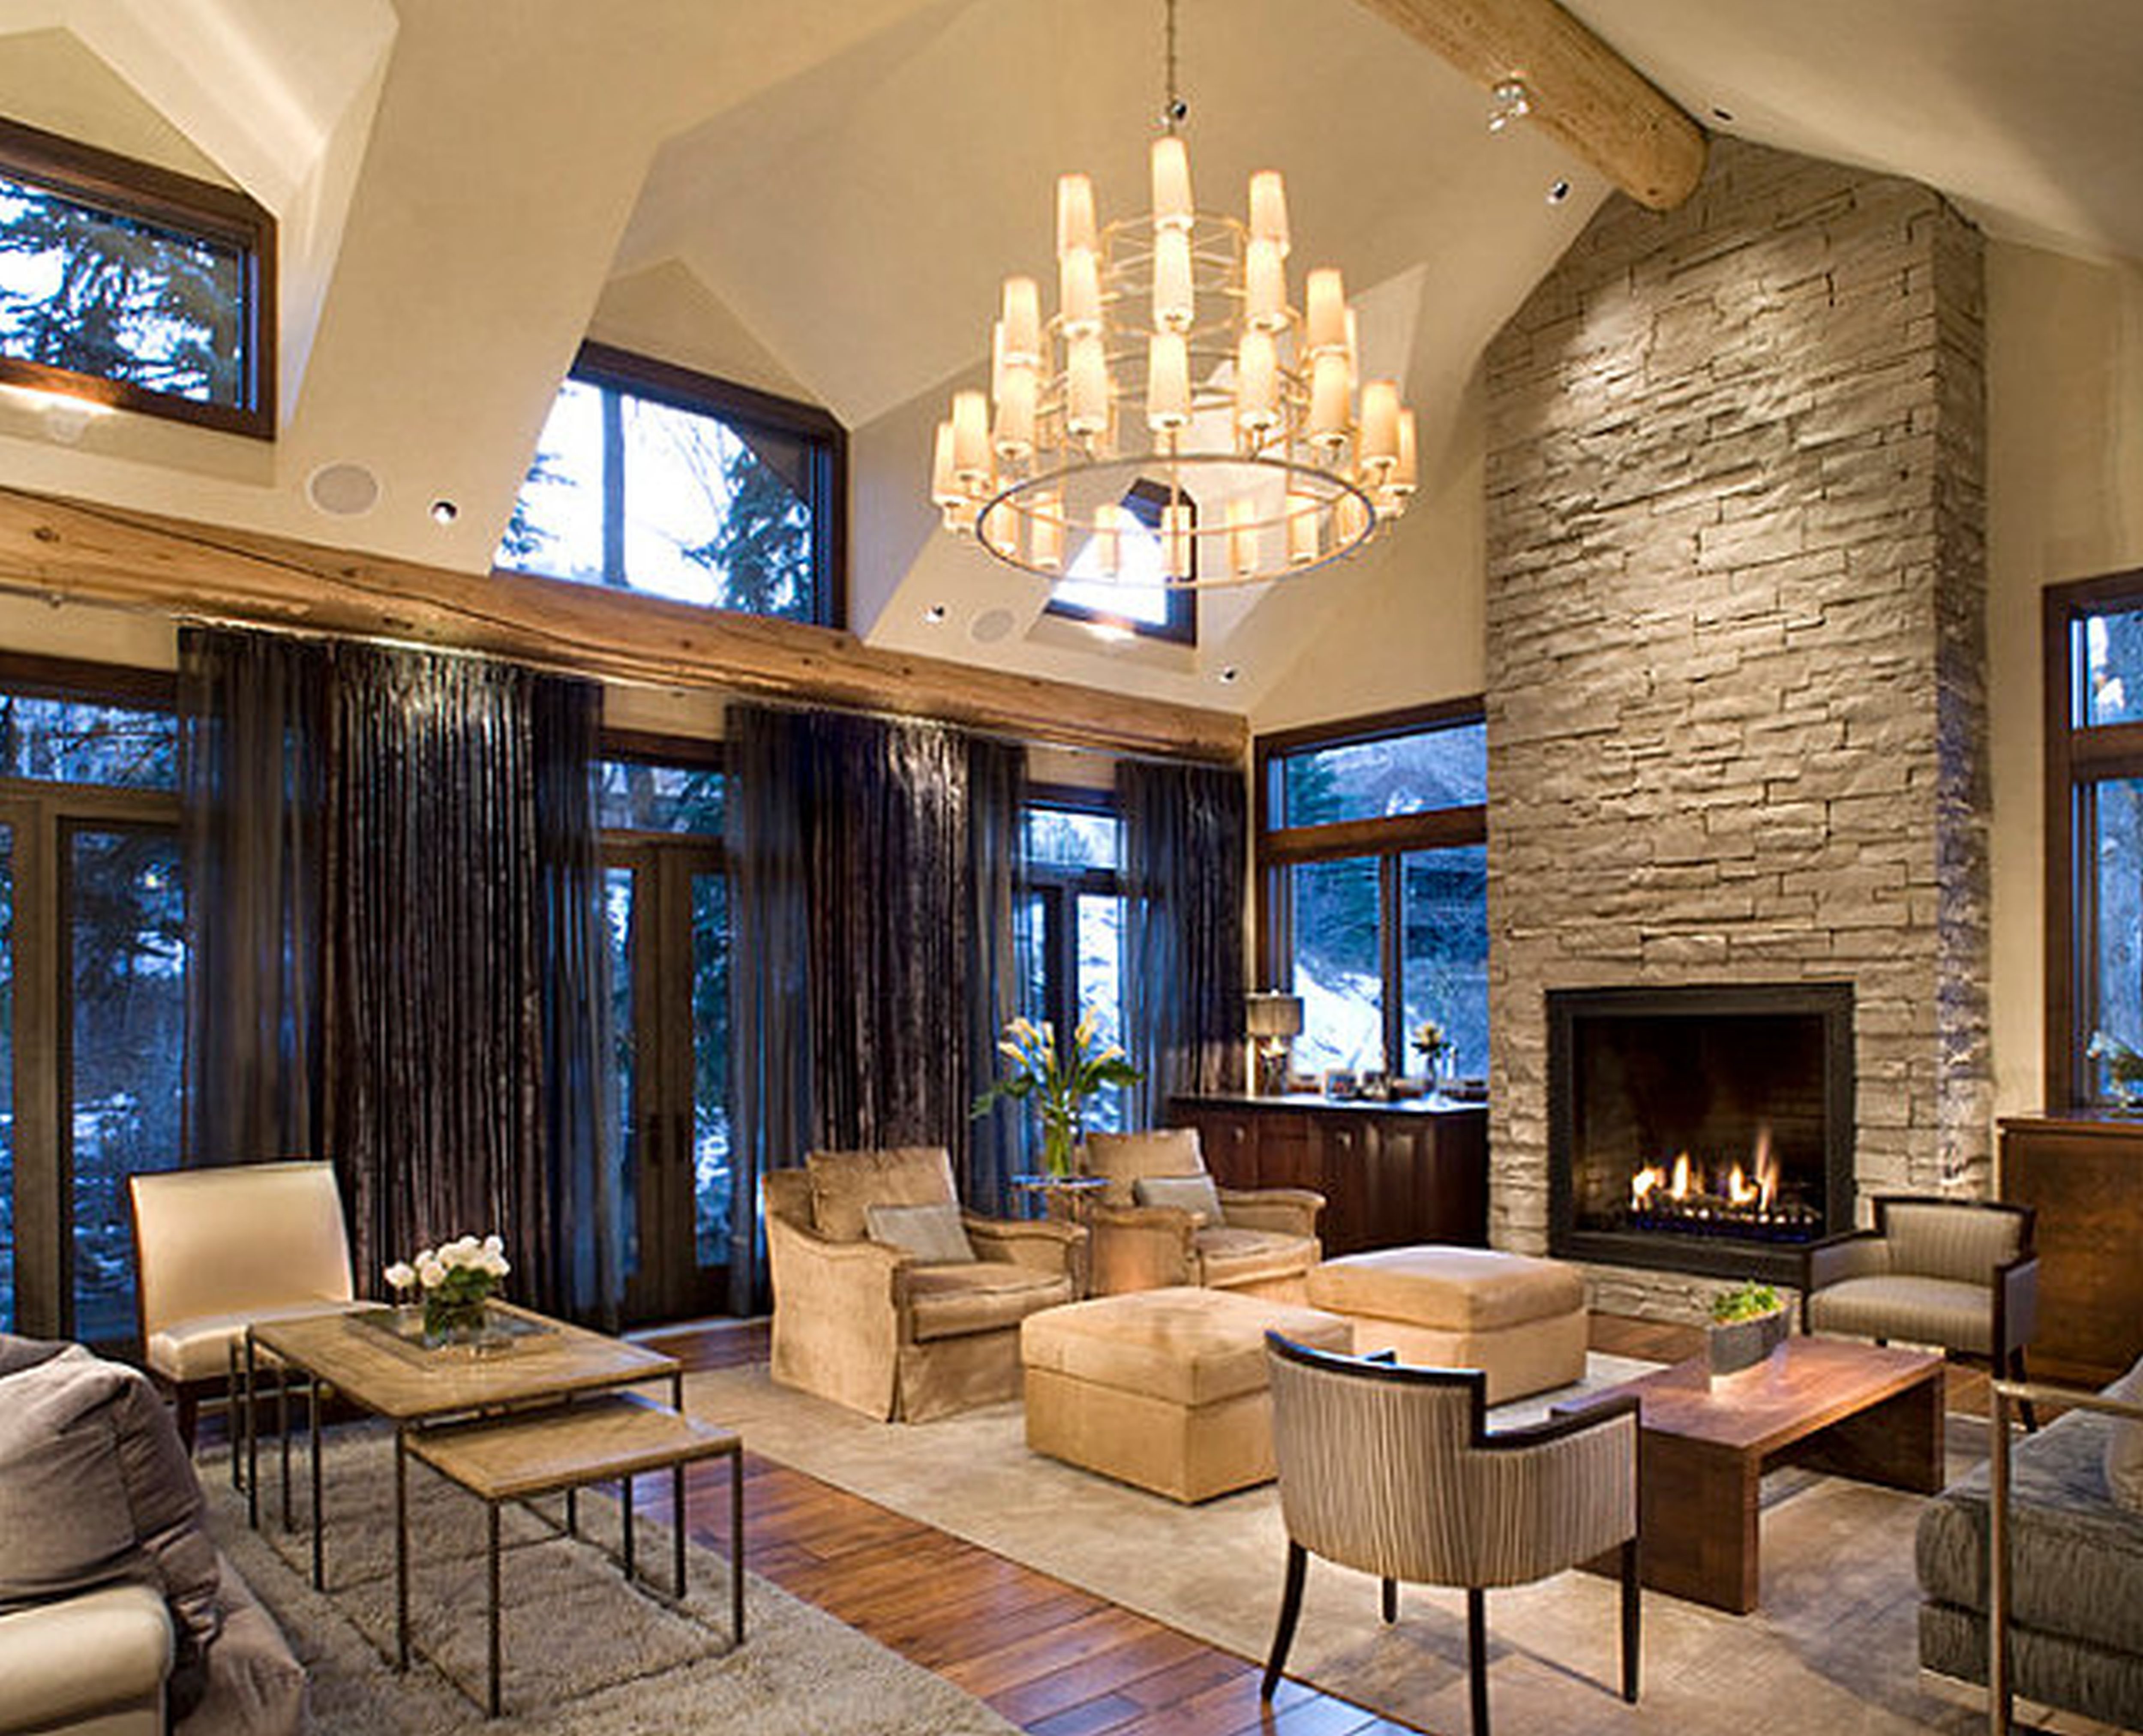 Astonishing Rustic Meets Modern Living Room Interior Decoration Ideas Viahouse Com